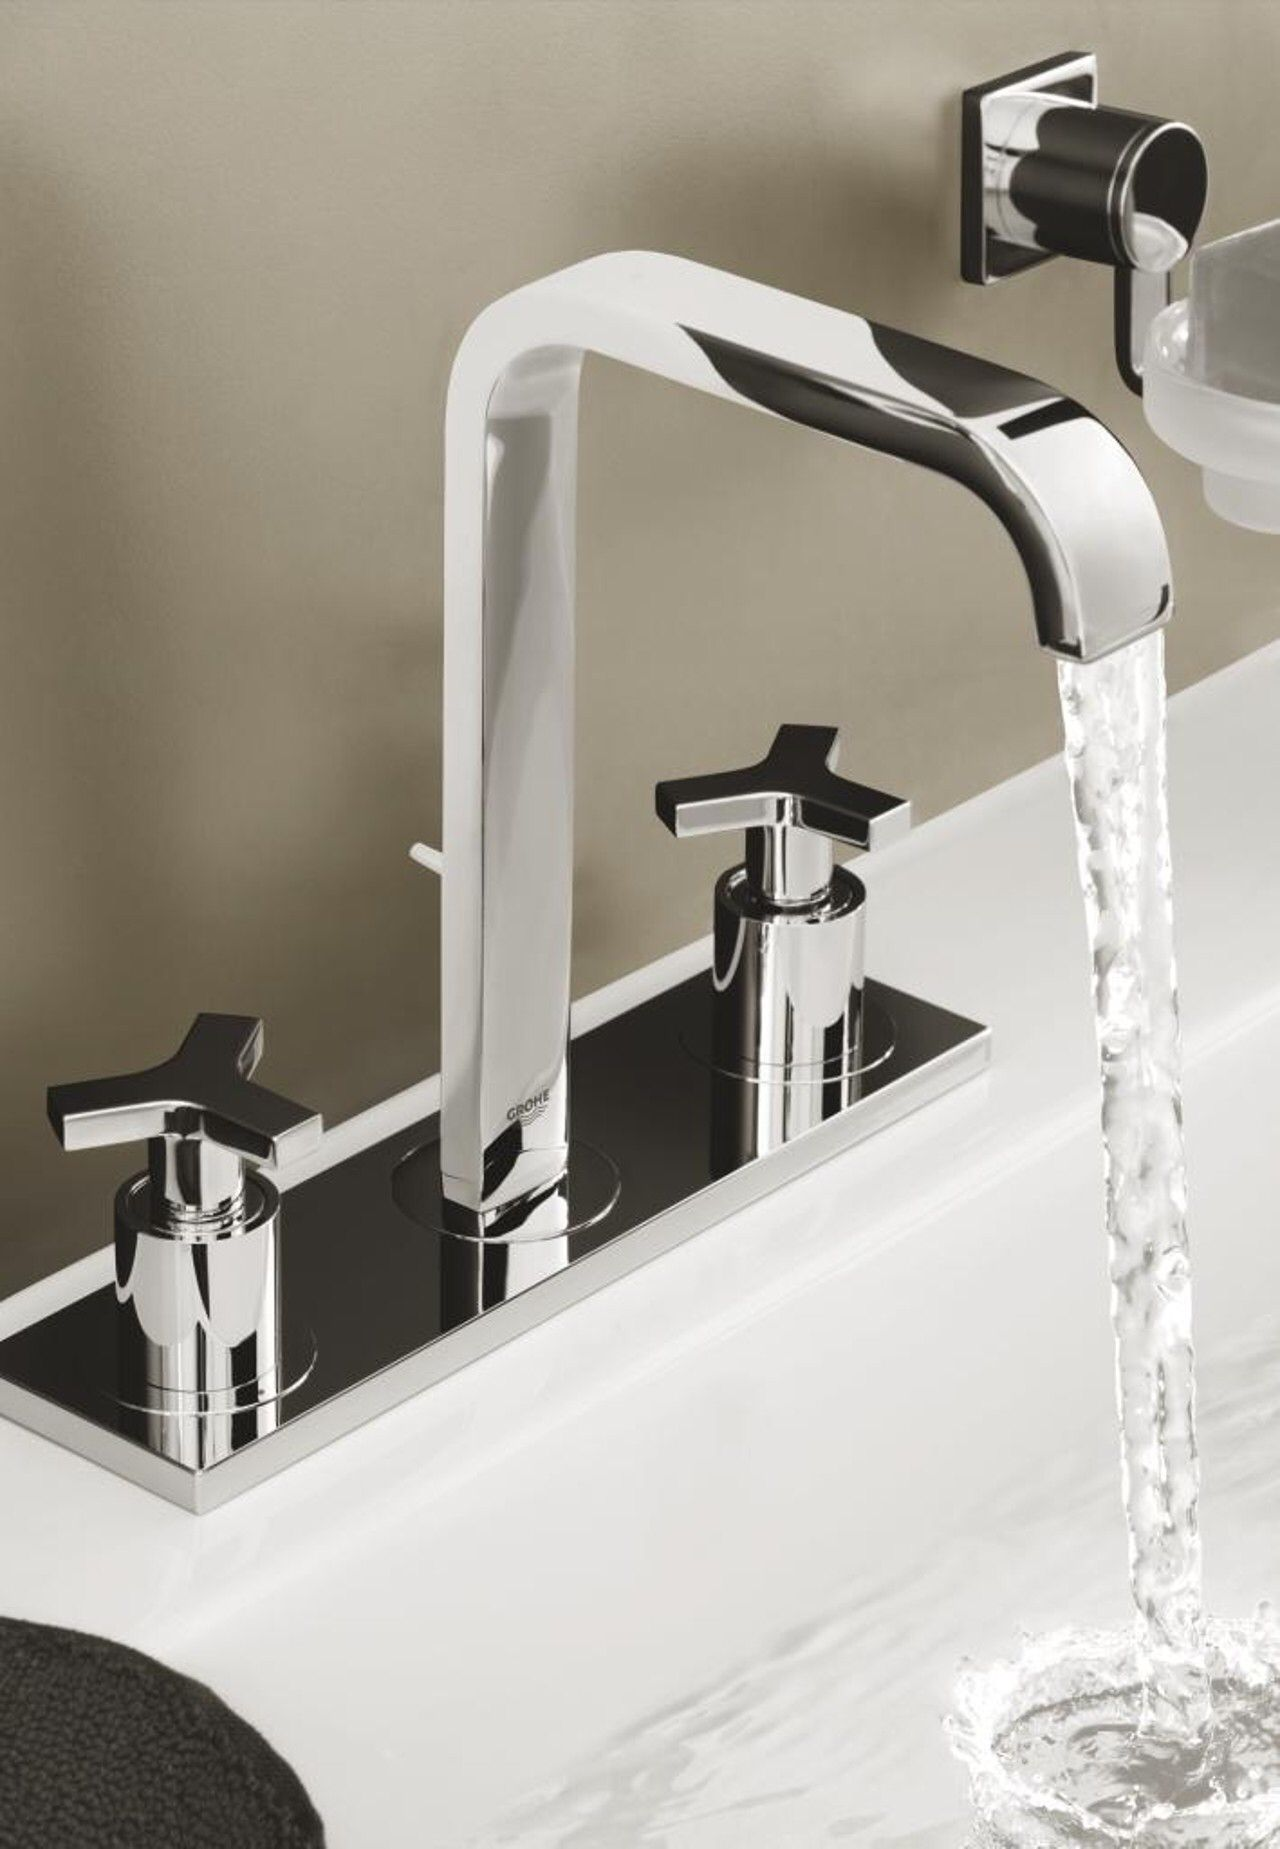 GROHE SPA Allure Collection | GROHE | Pinterest | Faucet, Family ...